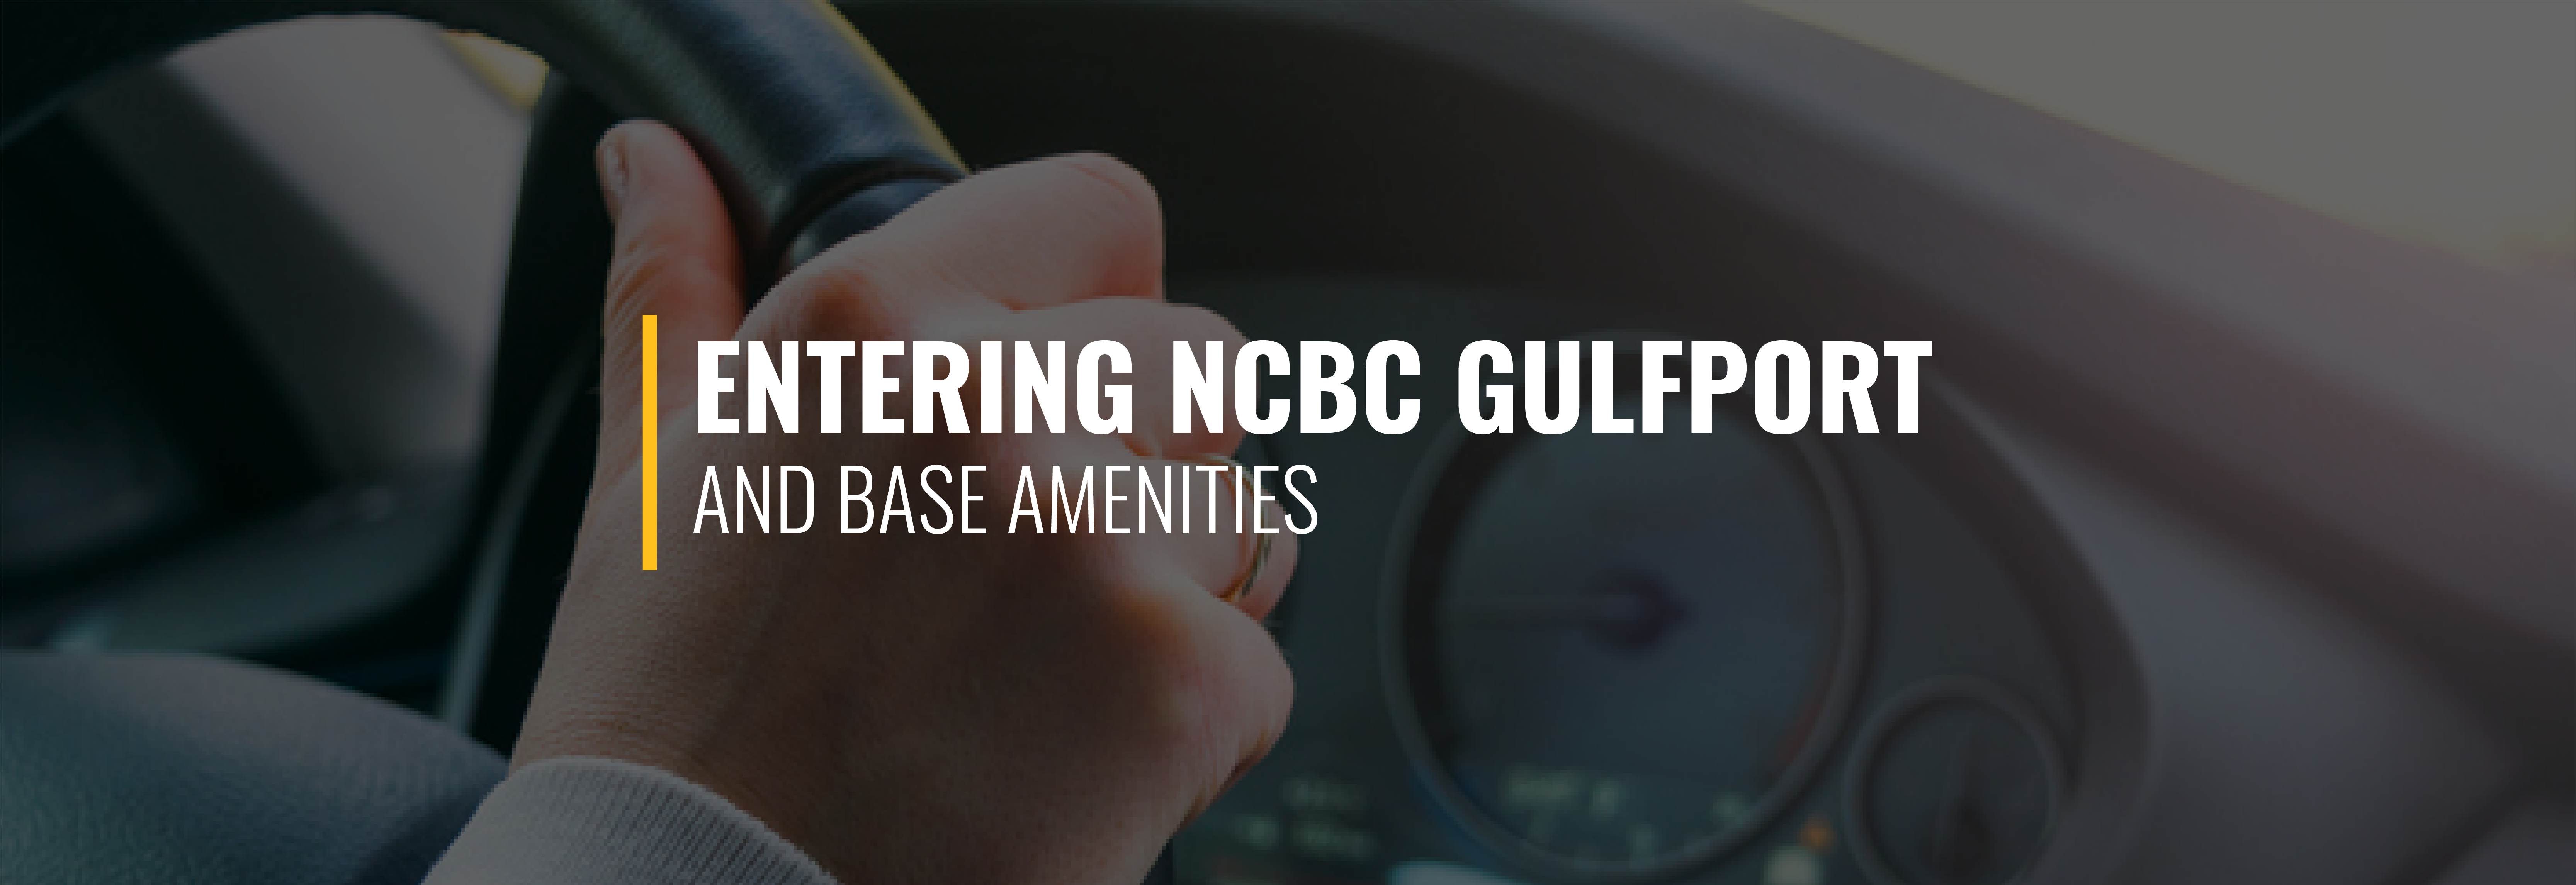 Entering Naval Construction Battalion Center Gulfport and Base Amenities